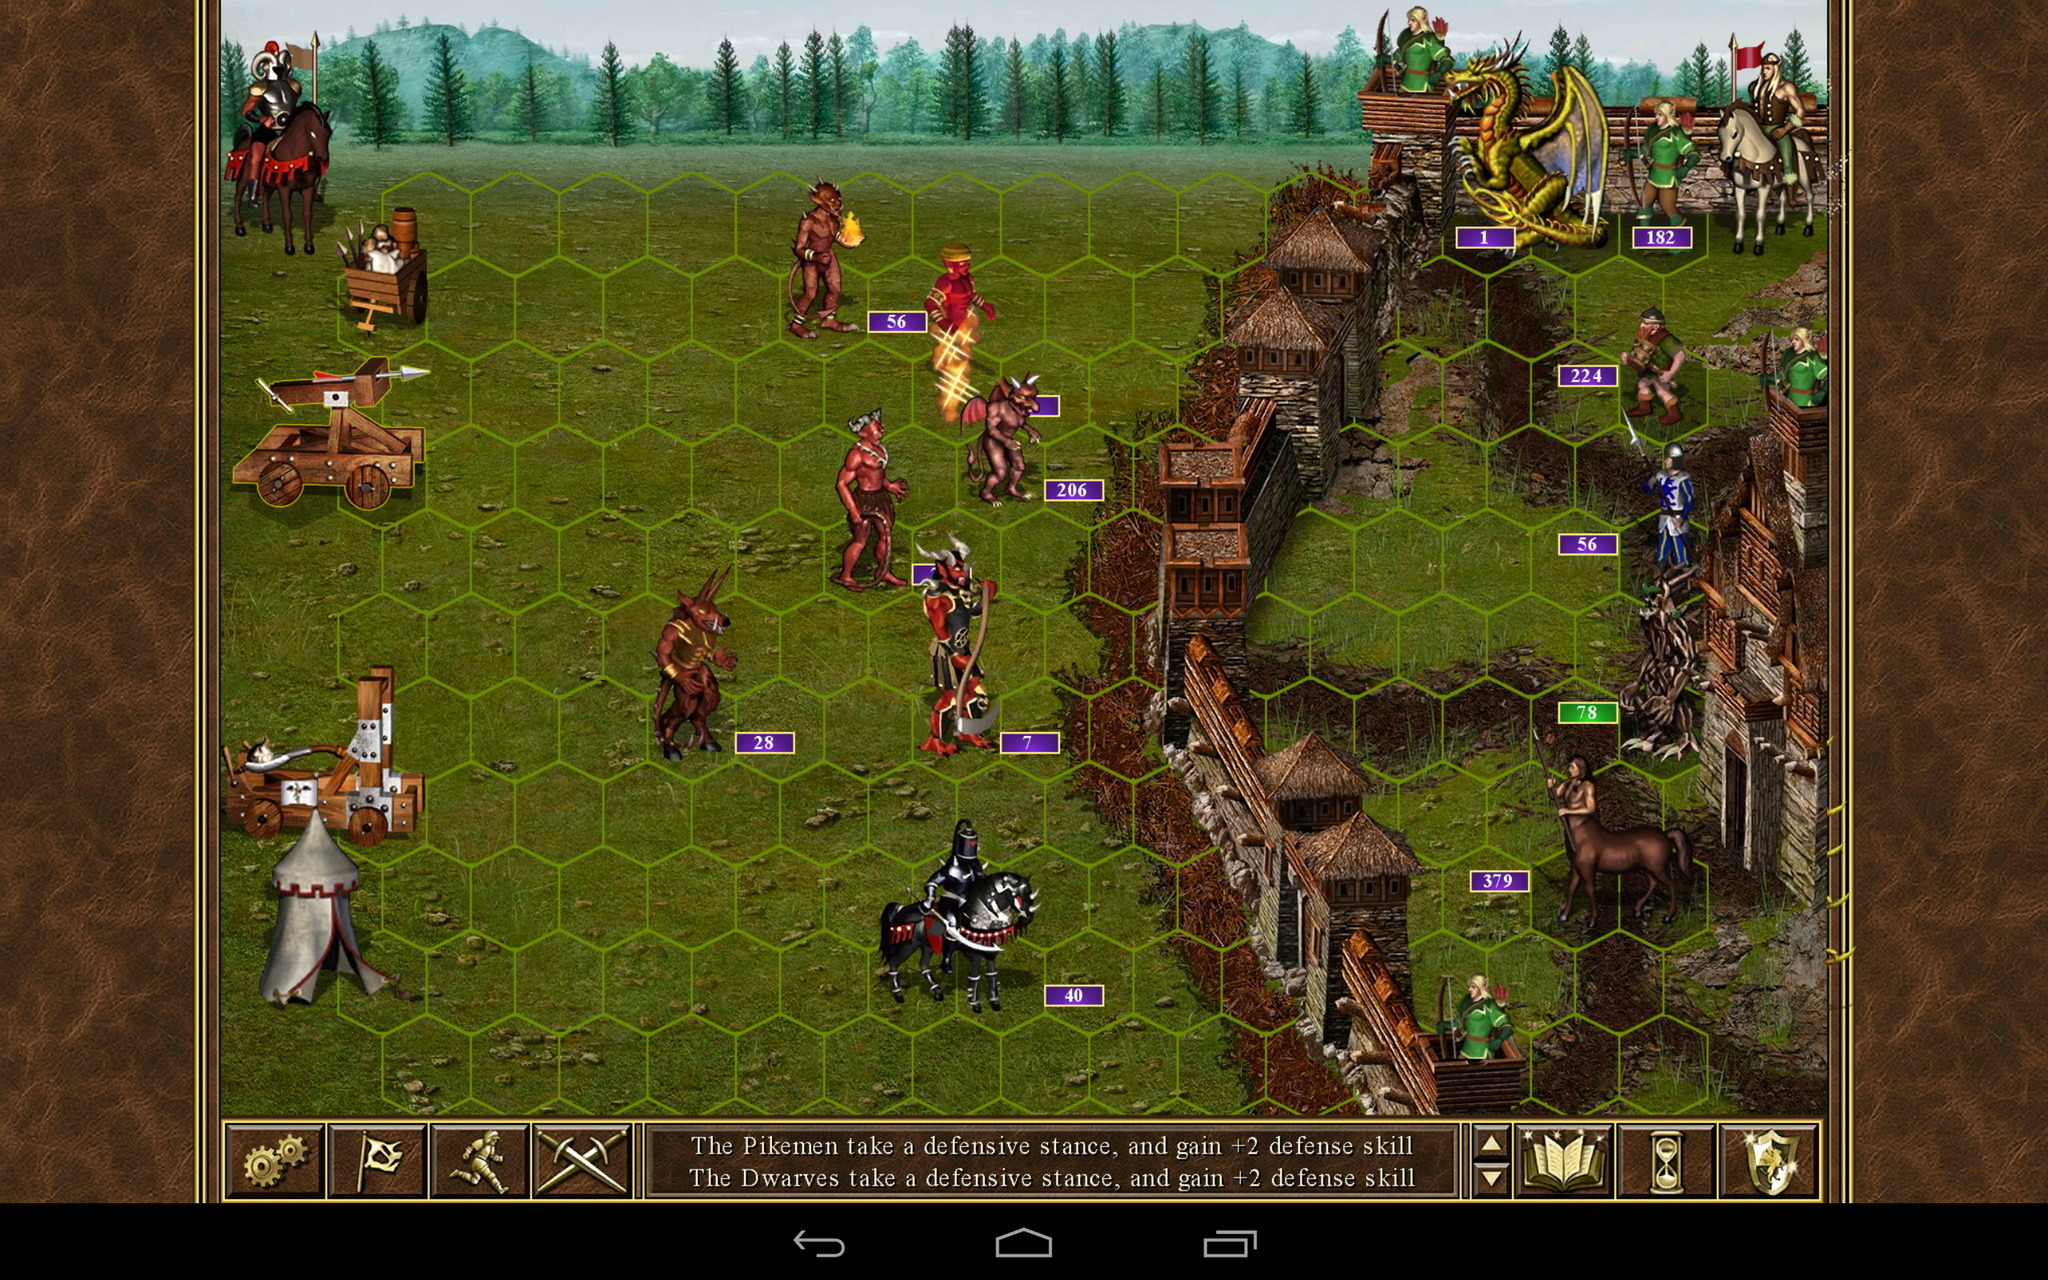 heroes of might and magic 3 android